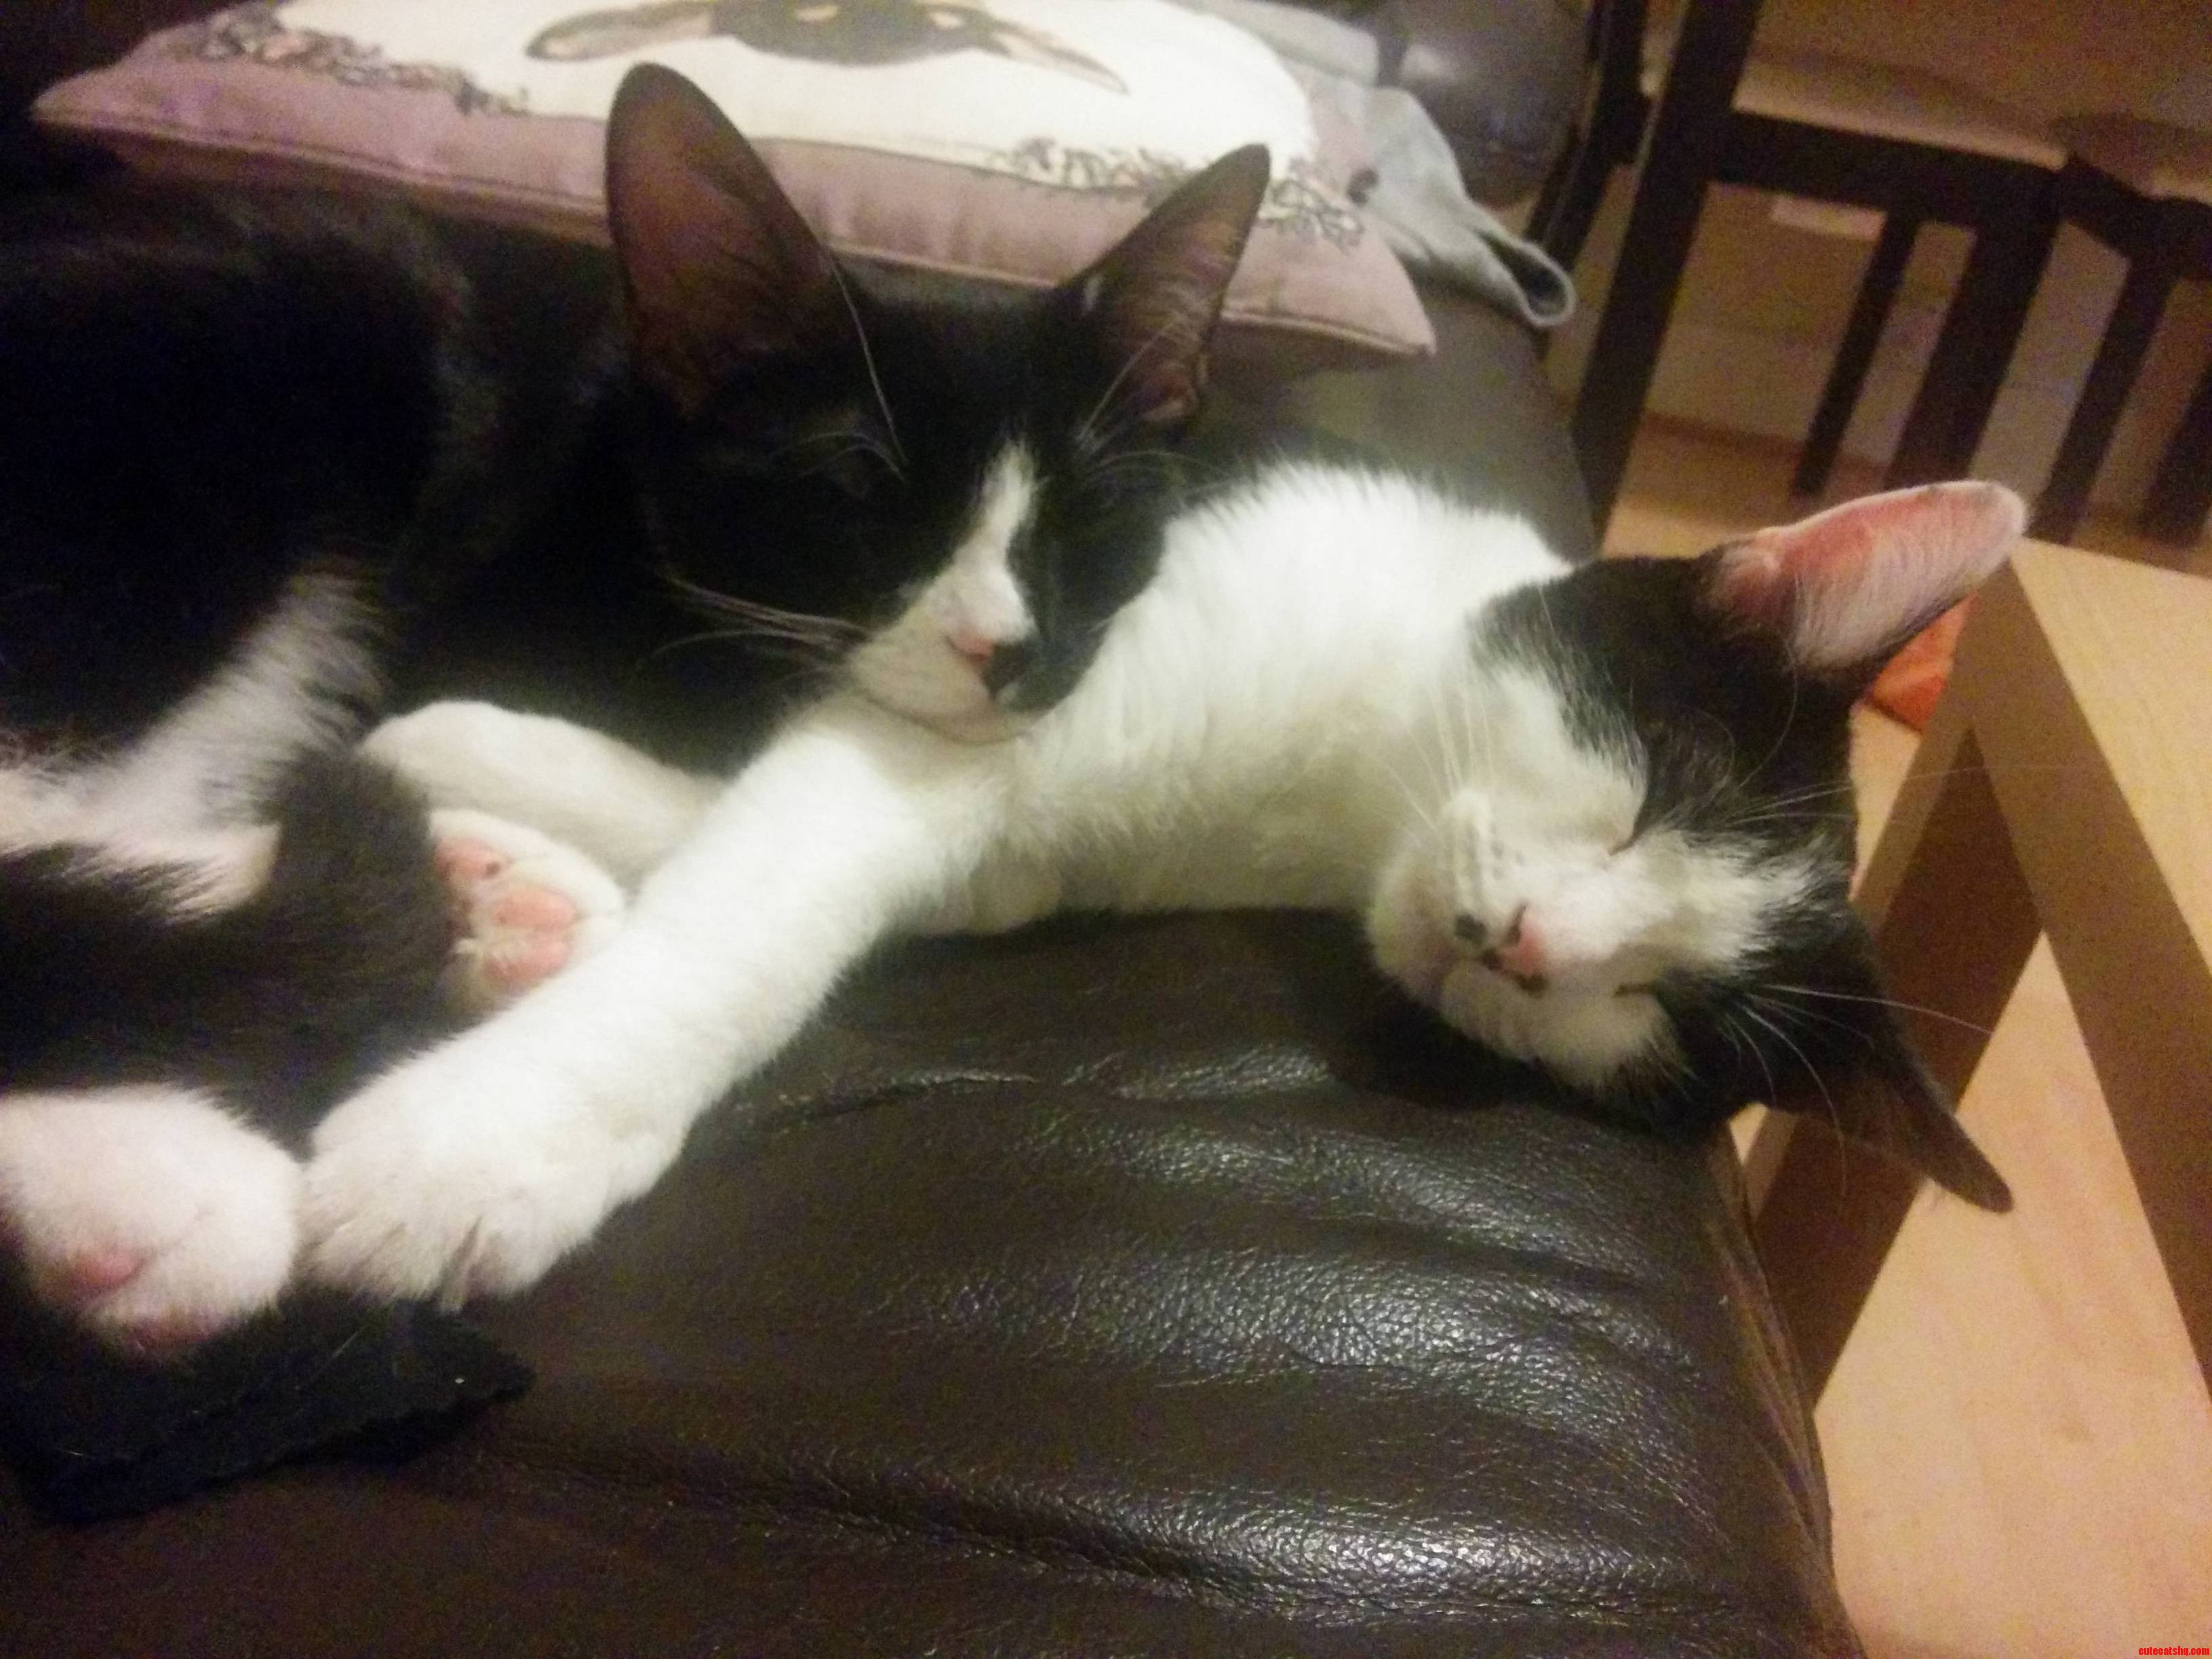 Even After 6 Months They Still Snuggle Up Together On The Sofa